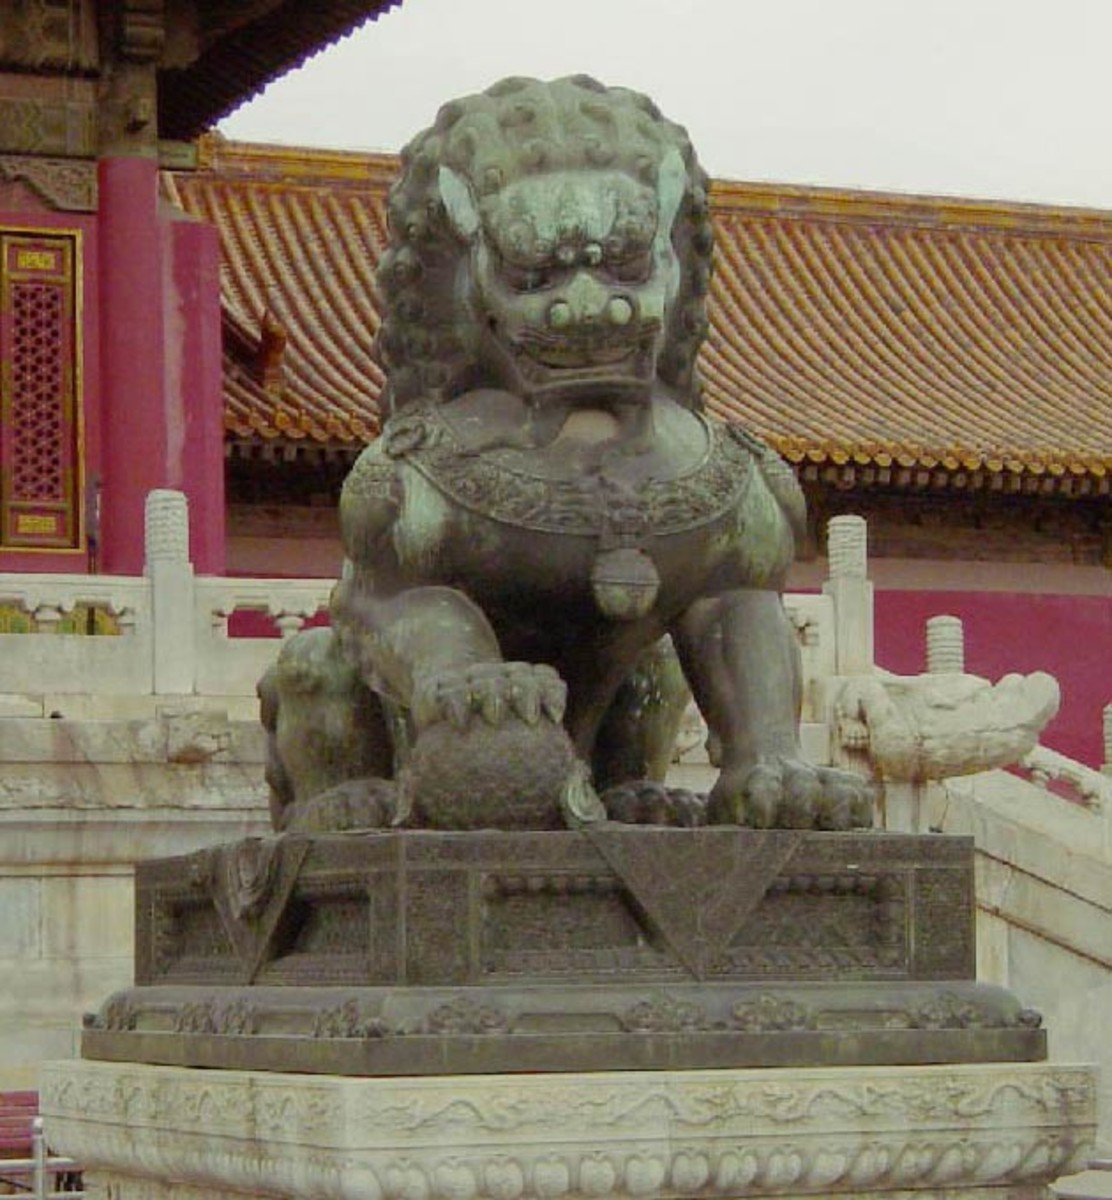 The Lion, Guardian Of The Knowledge